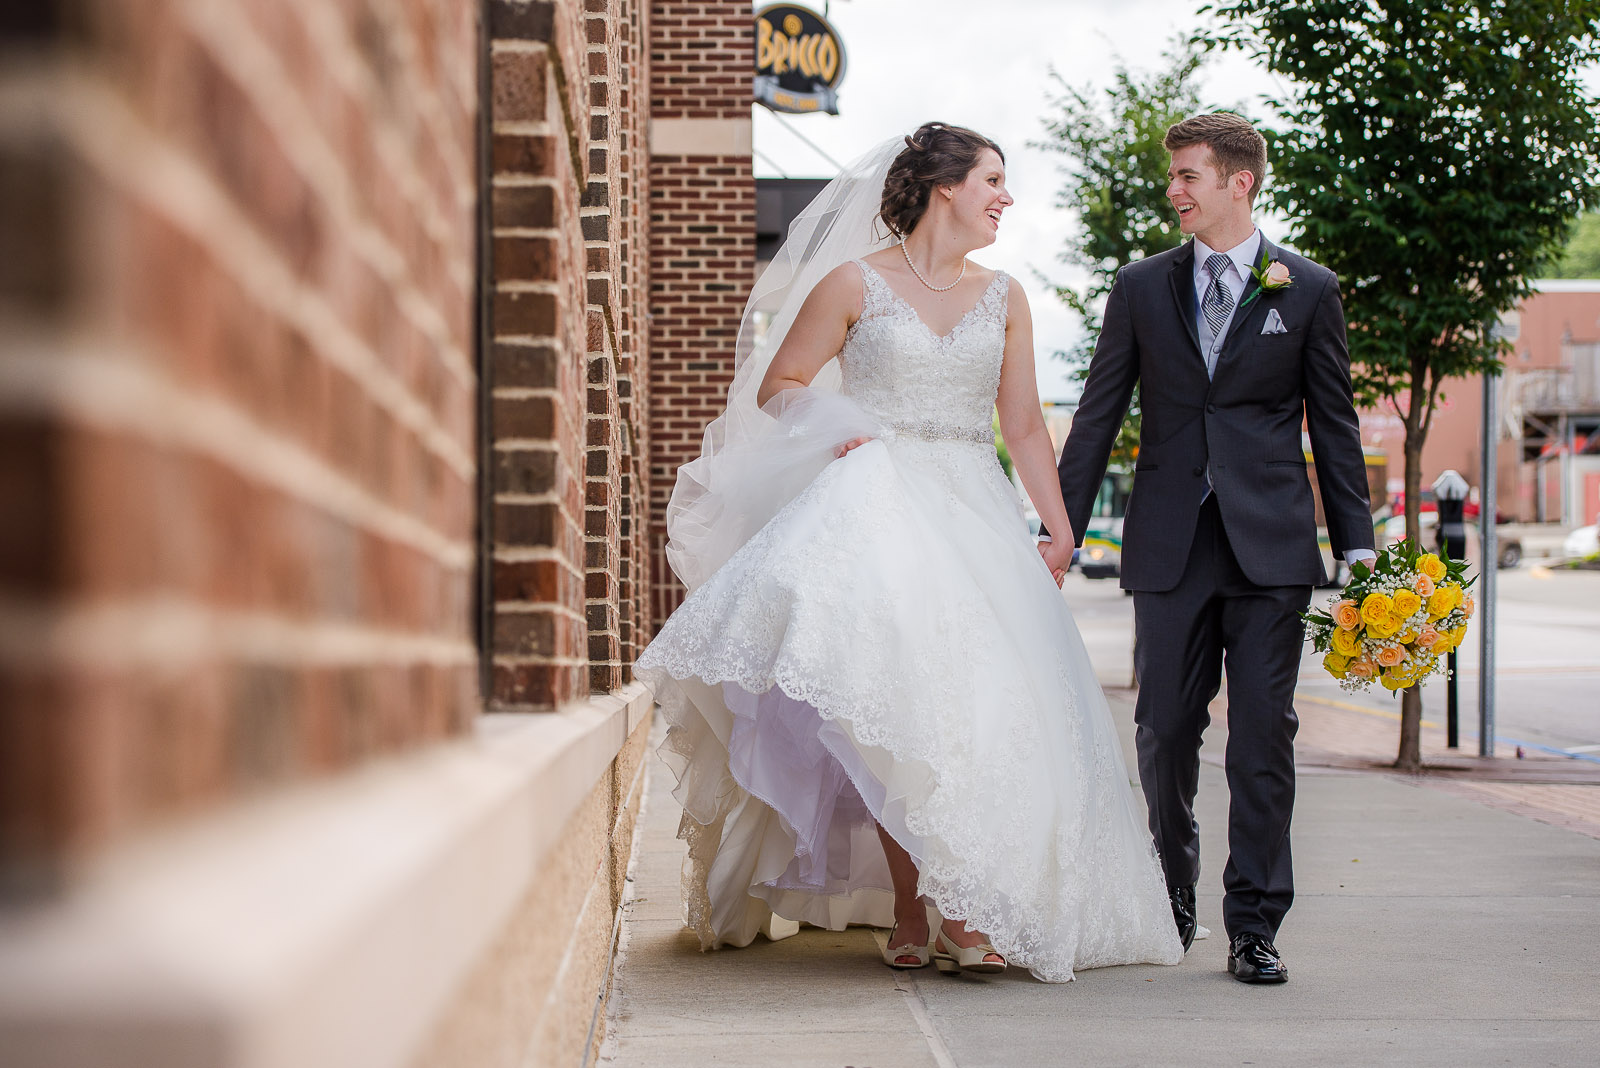 Eric_and_Christy_Photography_Blog_Wedding_Kelly_Michael-41